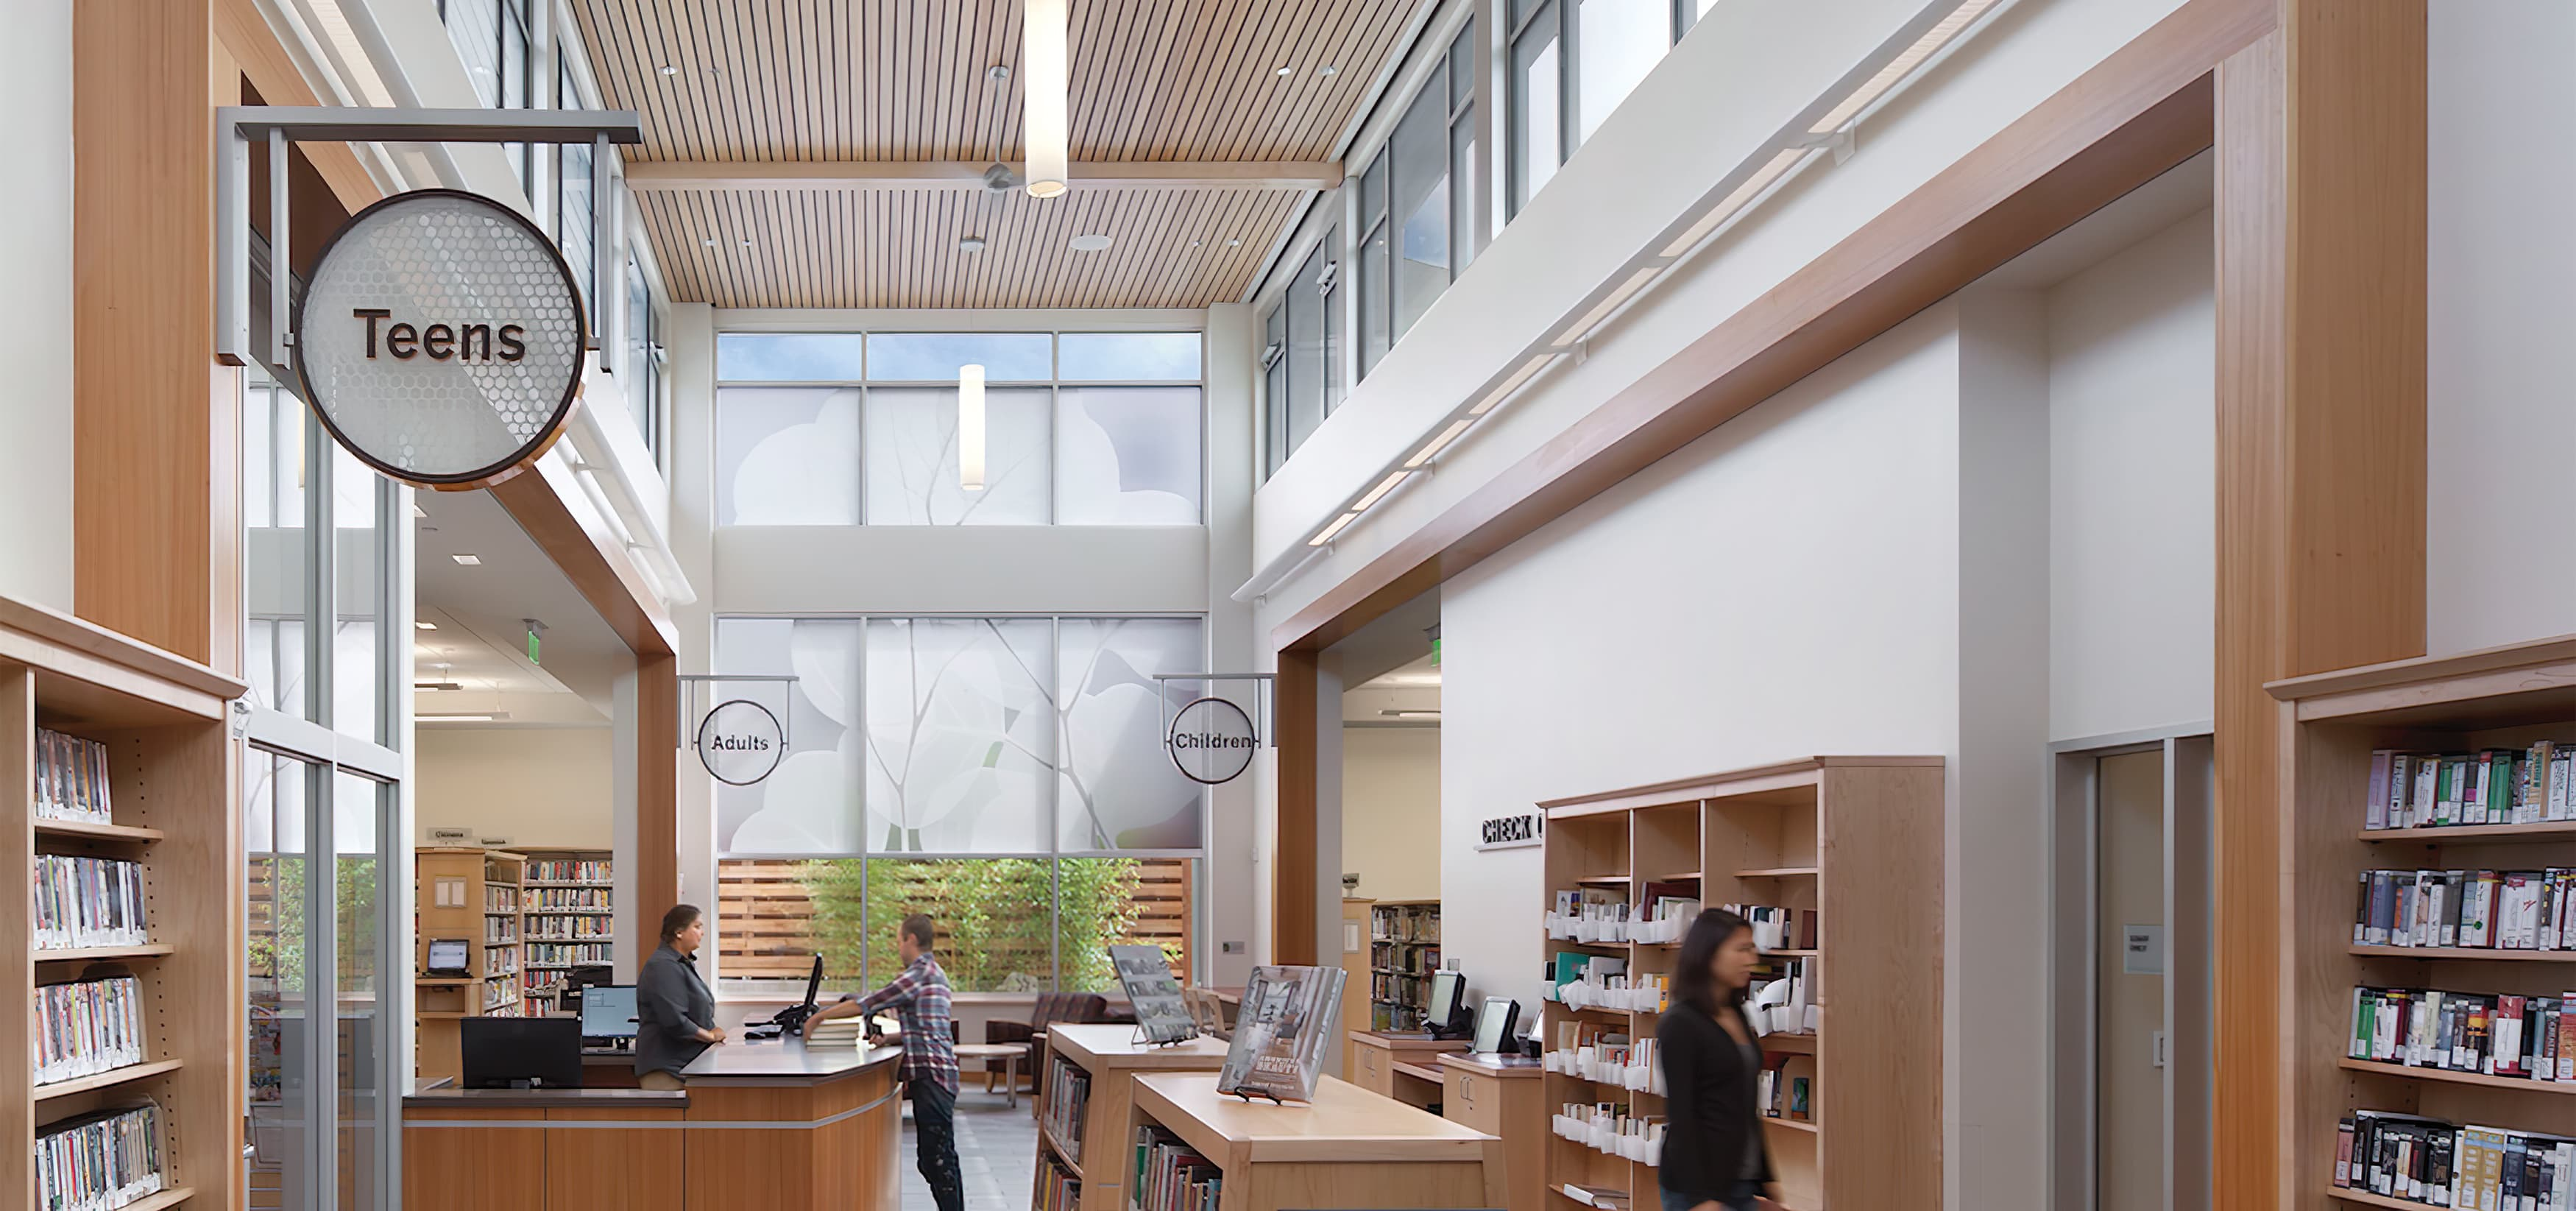 Berkeley Public Library South Branch. Our team developed a friendly and informative system of signage and placemaking elements in both the interior and exterior, our scope included identity and wayfinding signage.